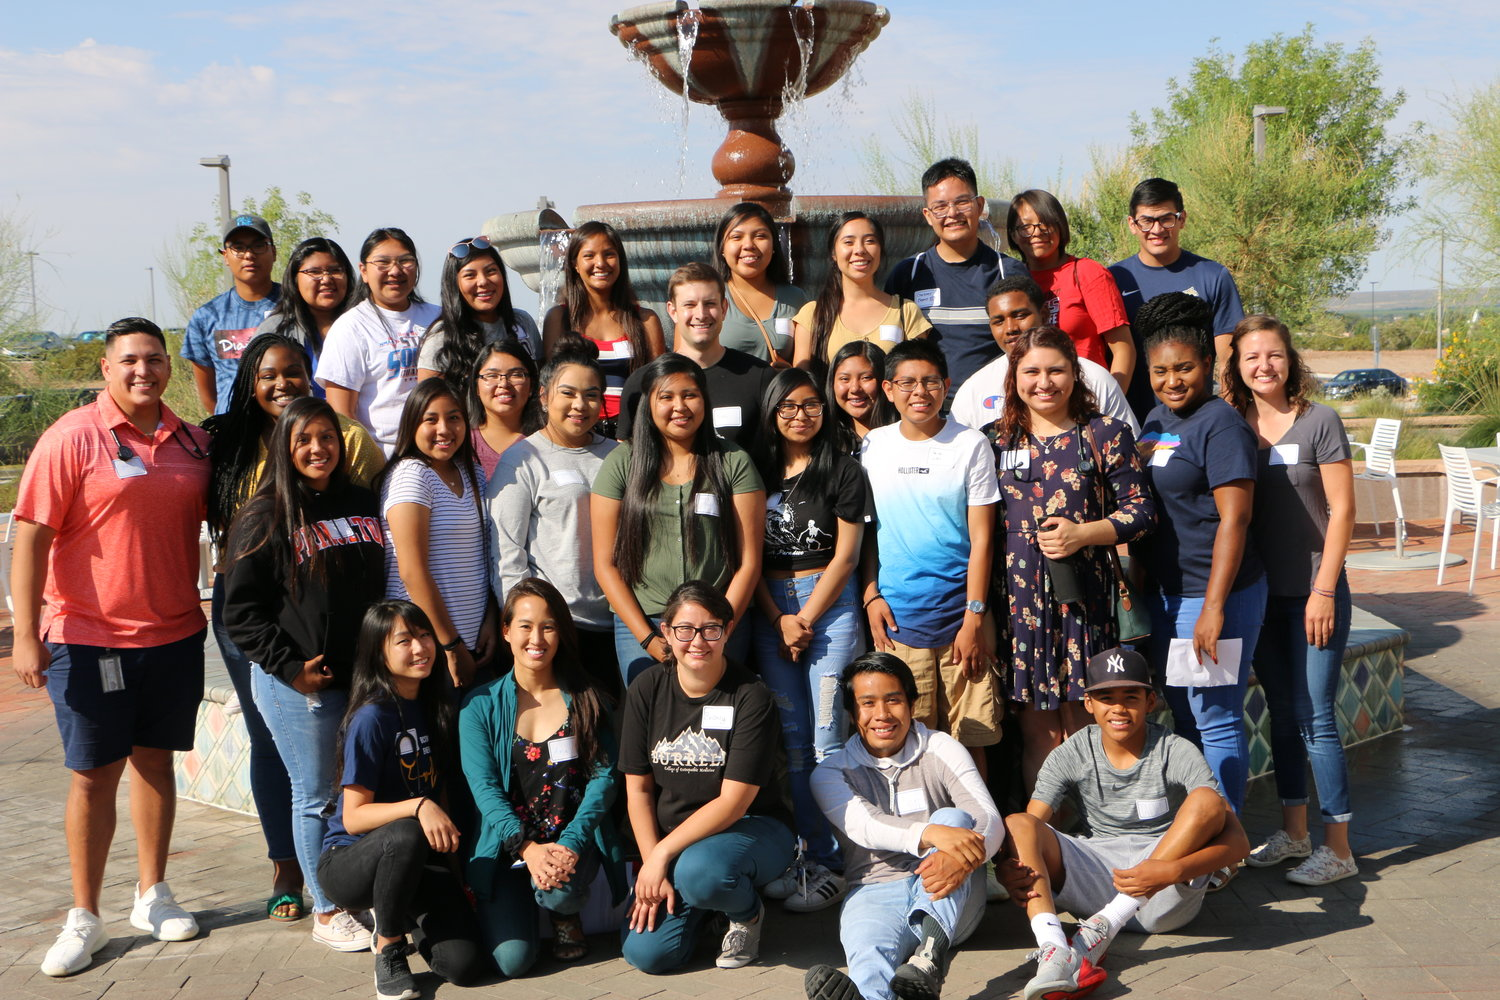 Students in the new Jemez-Pathways for Advancing Tribal Health (J-PATH) program pose with Burrell College of Osteopathic Medicine students in July.